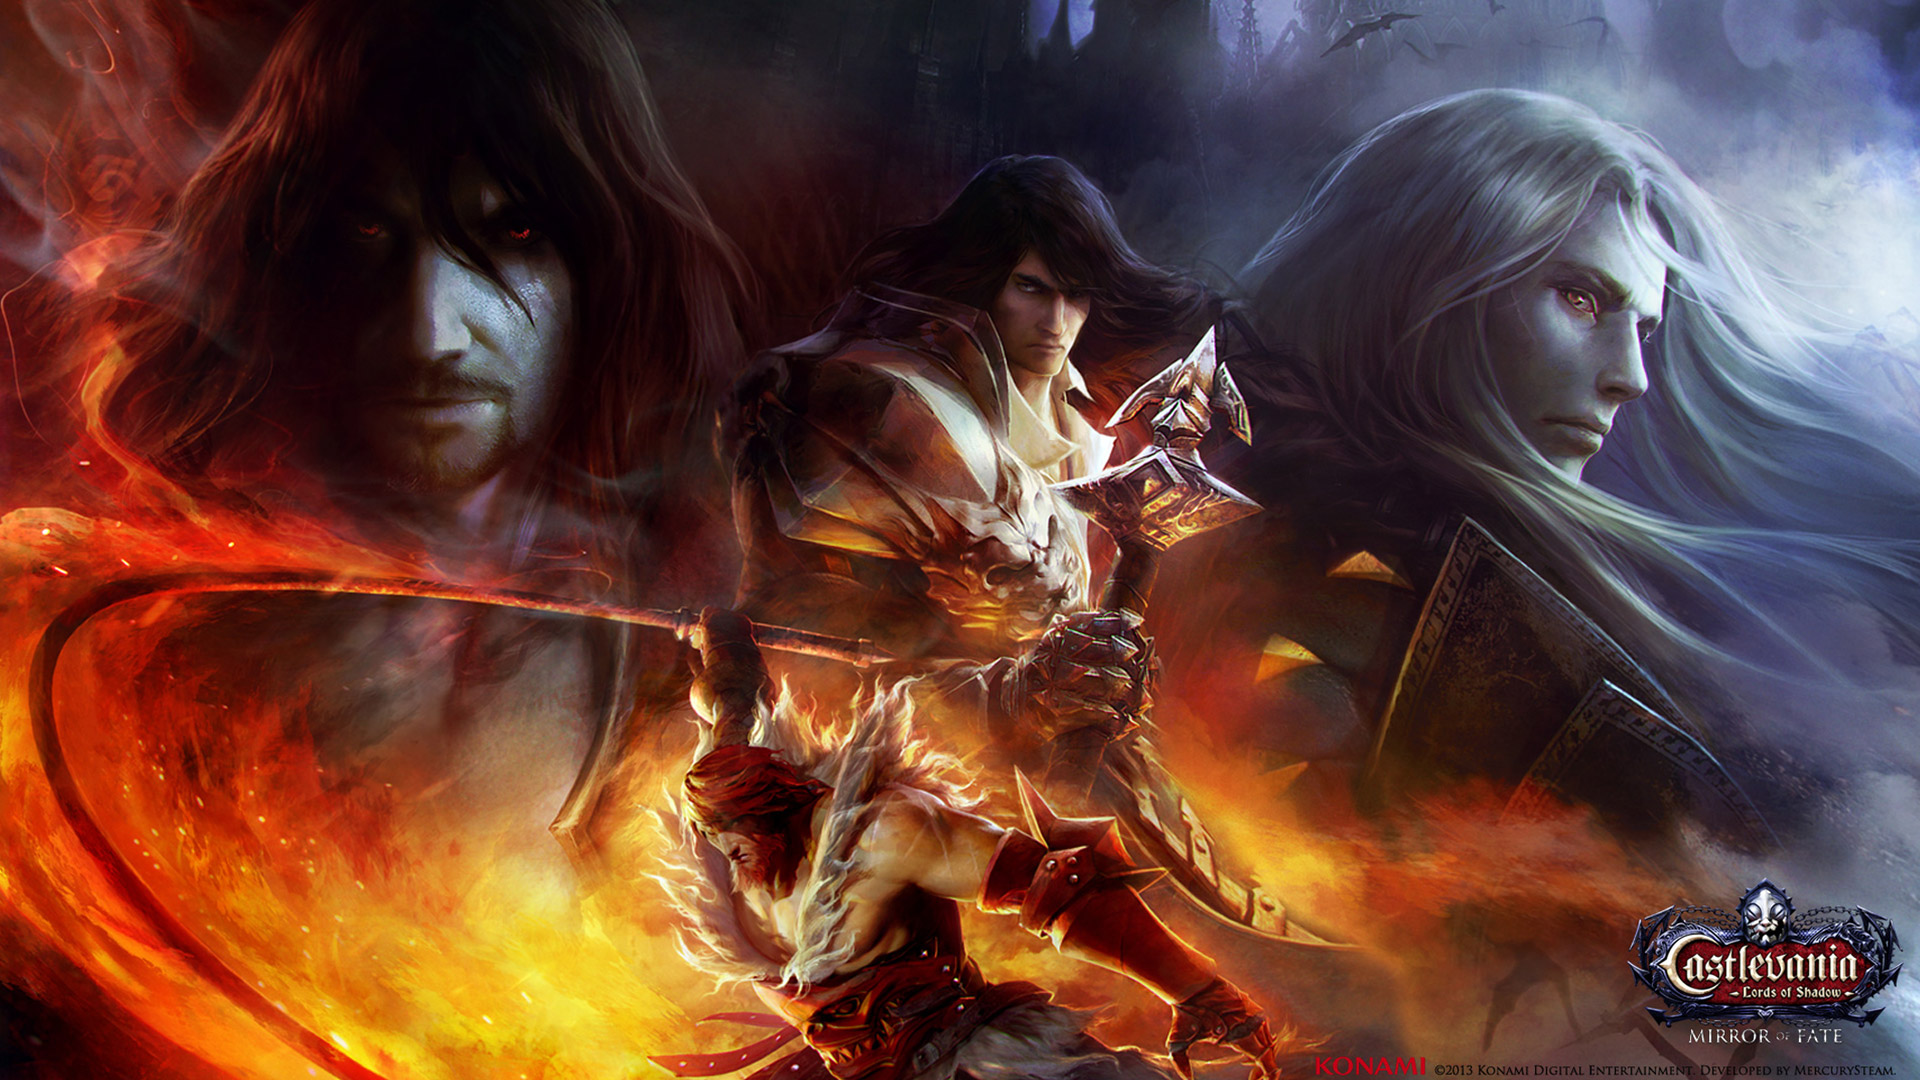 Castlevania: Lords of Shadow � Mirror of Fate Wallpaper in 1920x1080